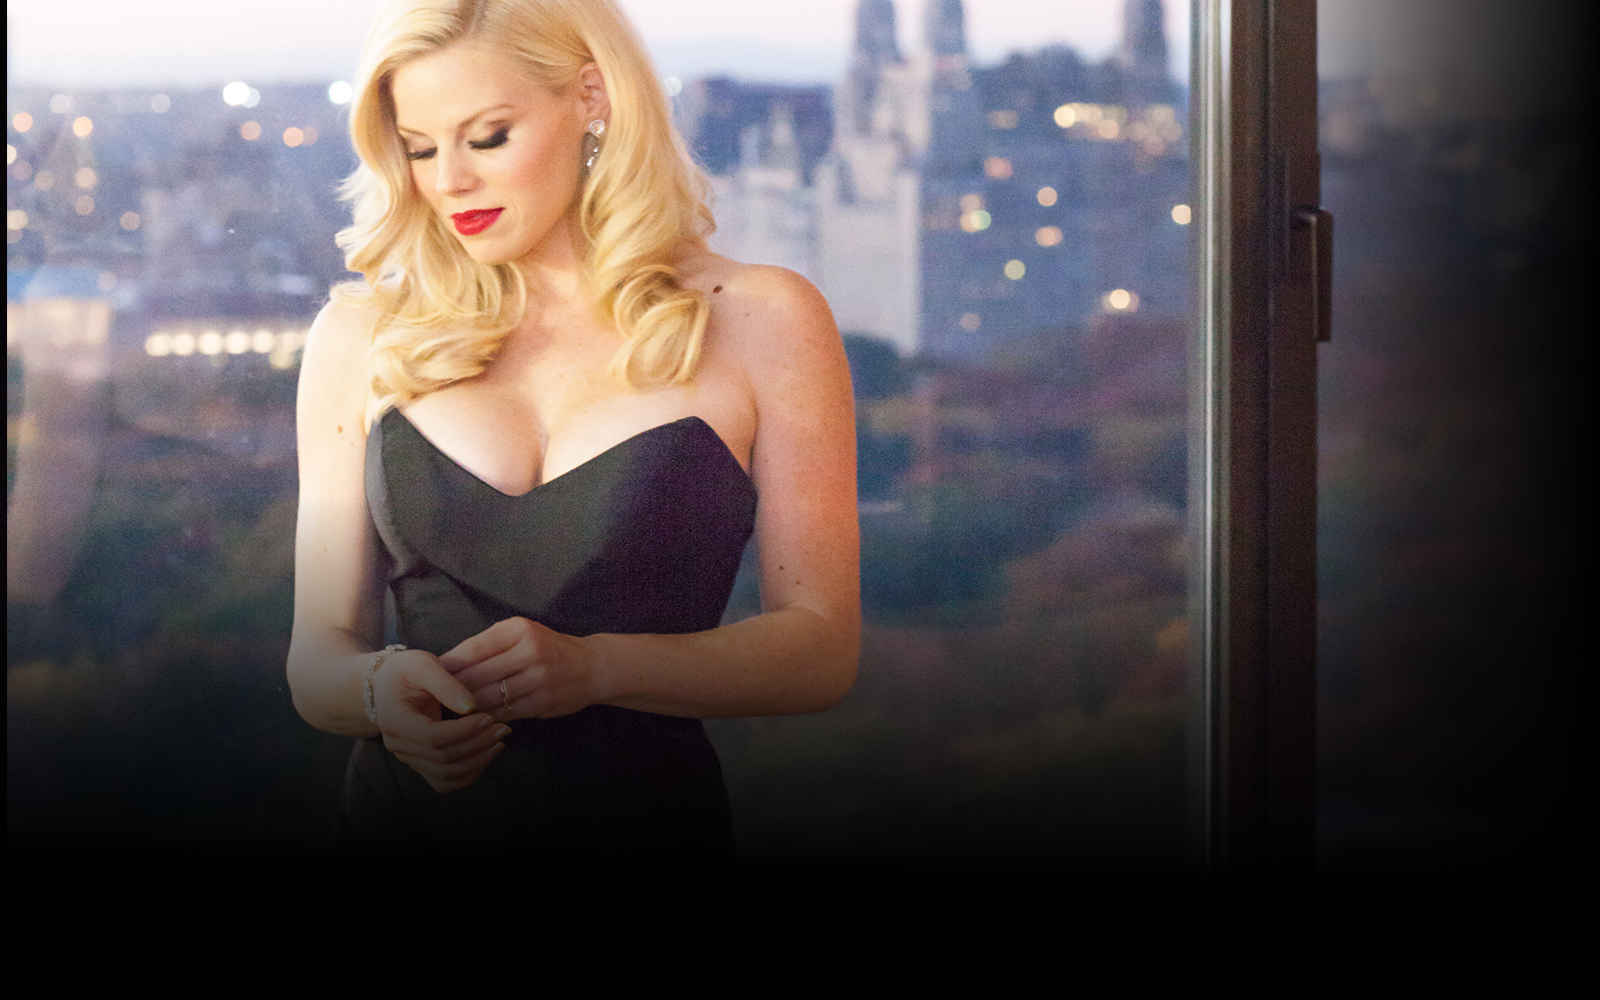 The Art of Aging: On Stage with Megan Hilty image